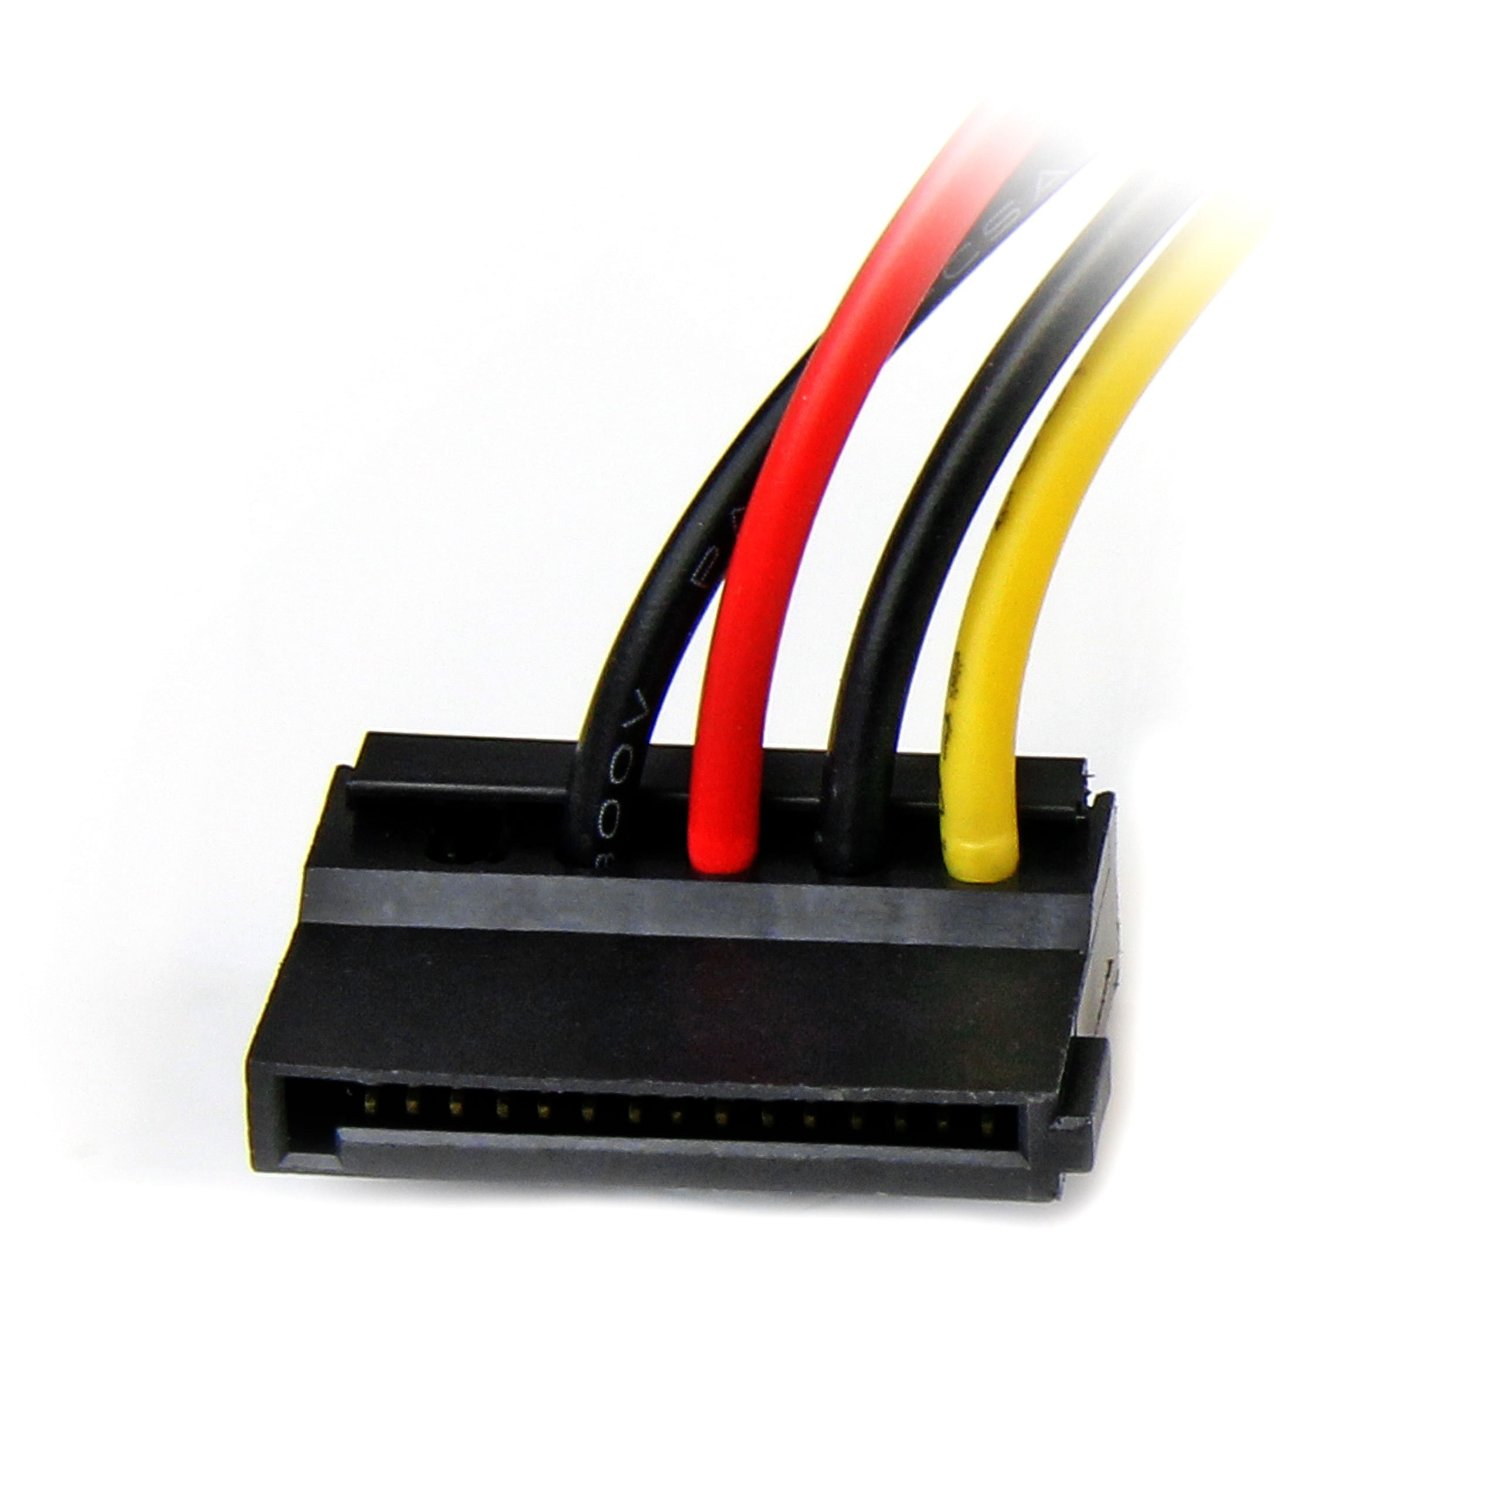 Startechcom 6in 4 Pin Molex To Left Angle Sata Power Cable Adapter Plug Wiring Diagram A Hard Drive From Conventional Lp4 Supply Connection